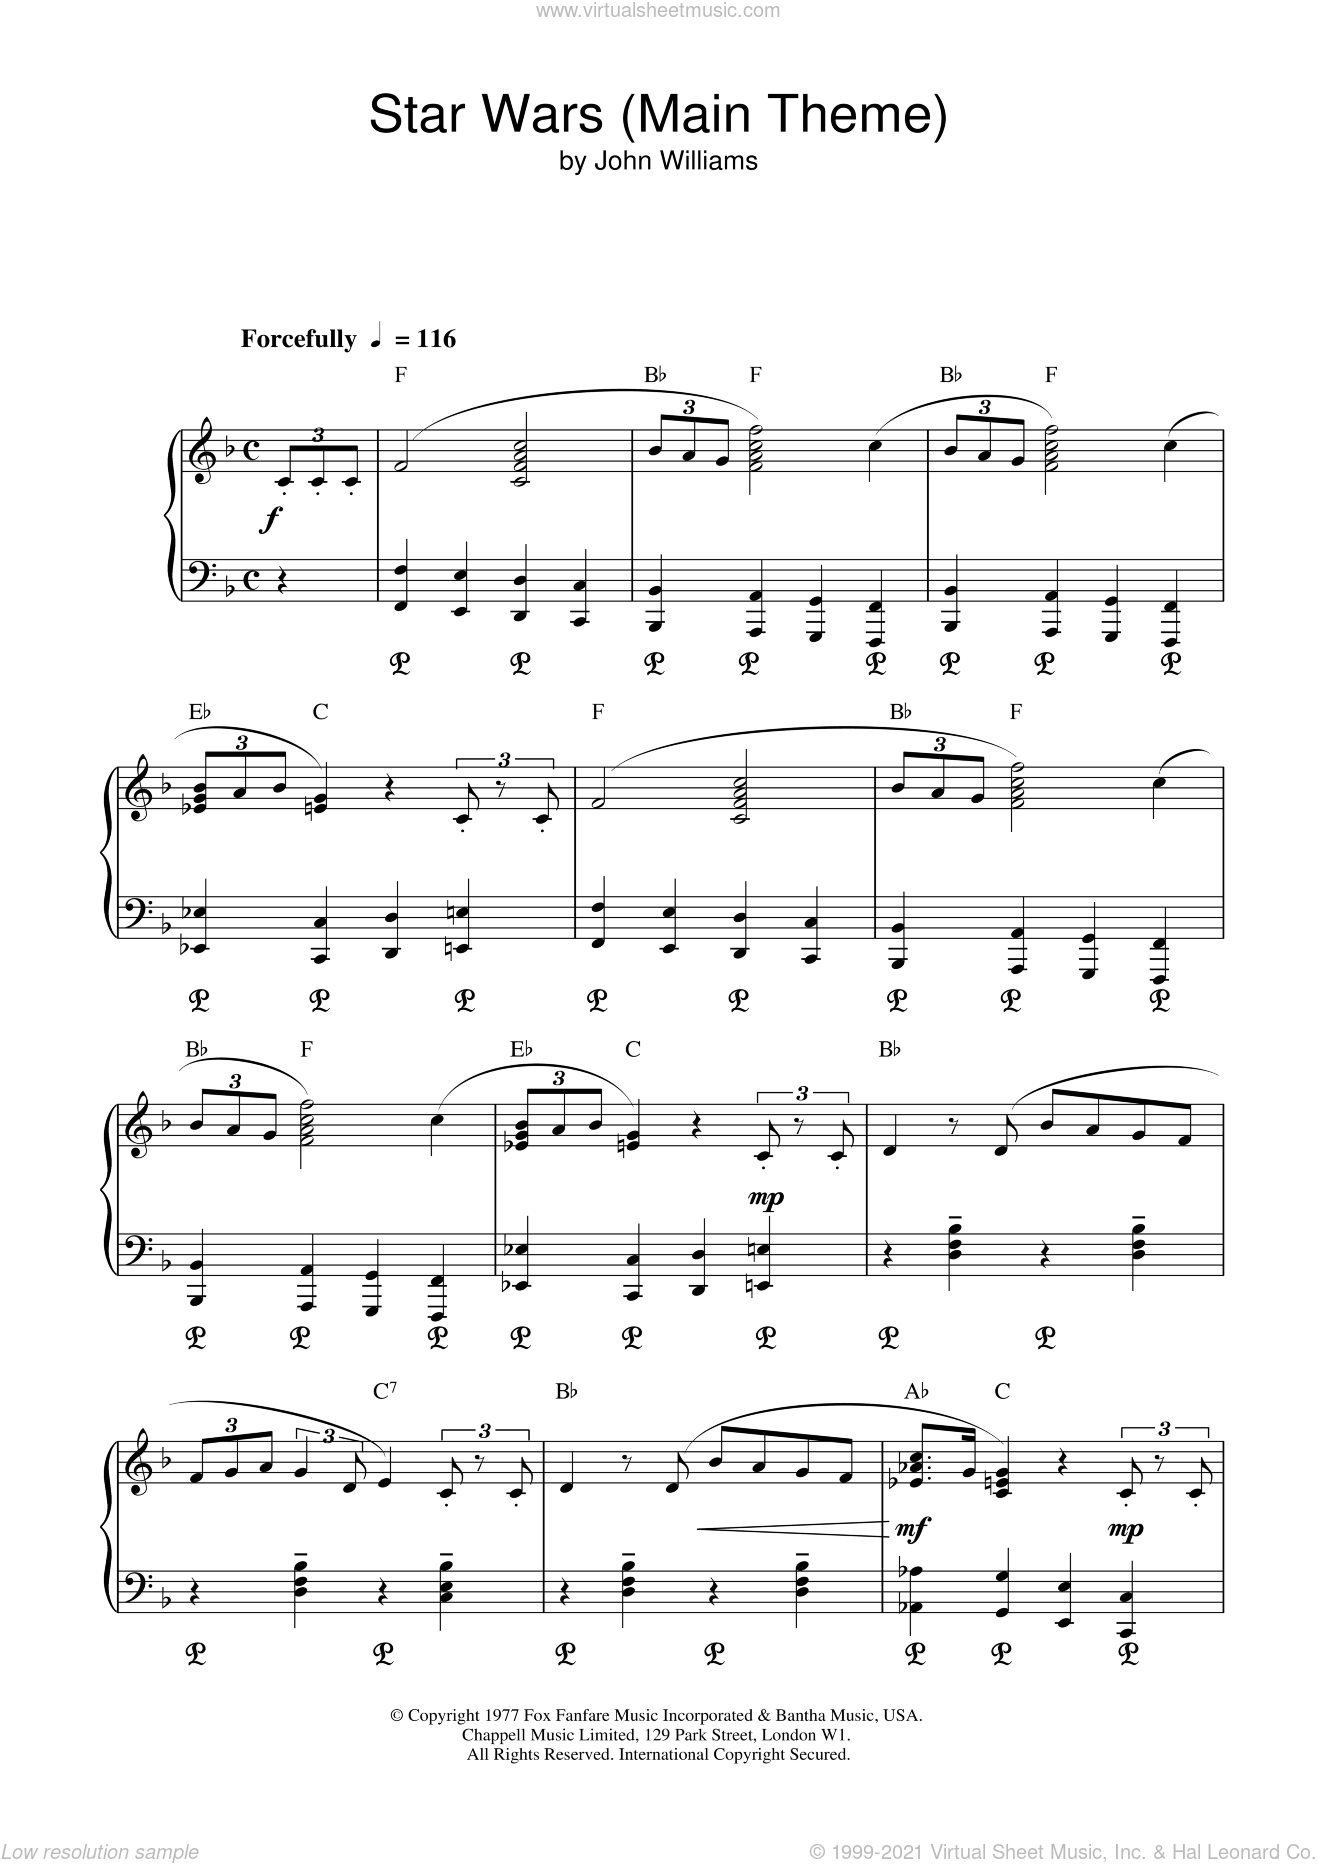 Star Wars (Main Theme) sheet music for voice and piano by John Williams, intermediate skill level